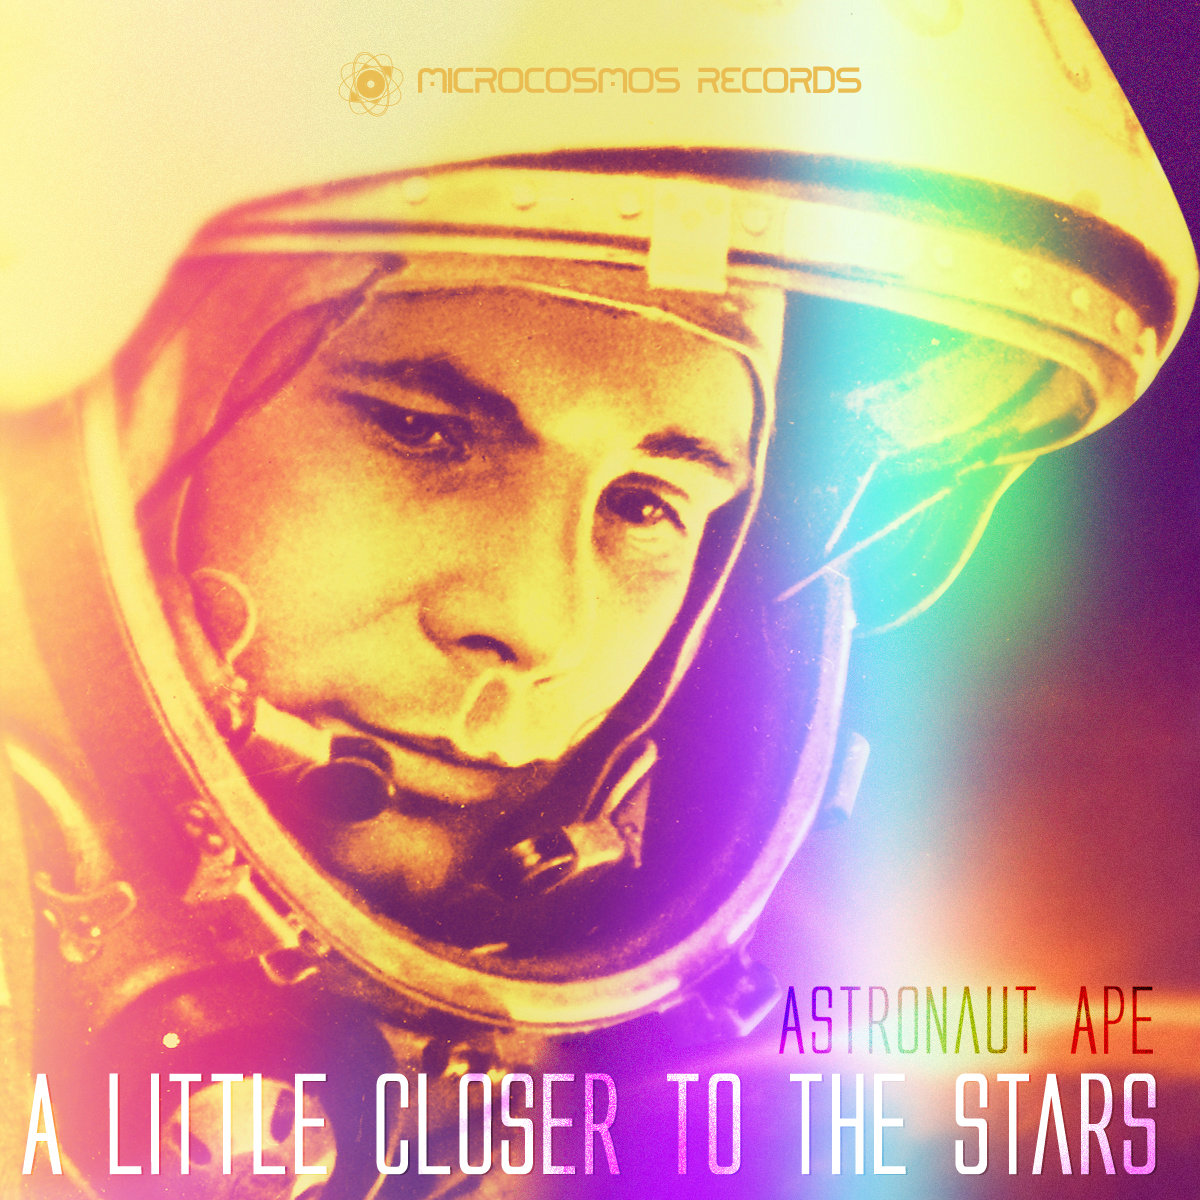 Astronaut Ape - He Was The First @ 'A Little Closer To The Stars' album (ambient, chill-out)